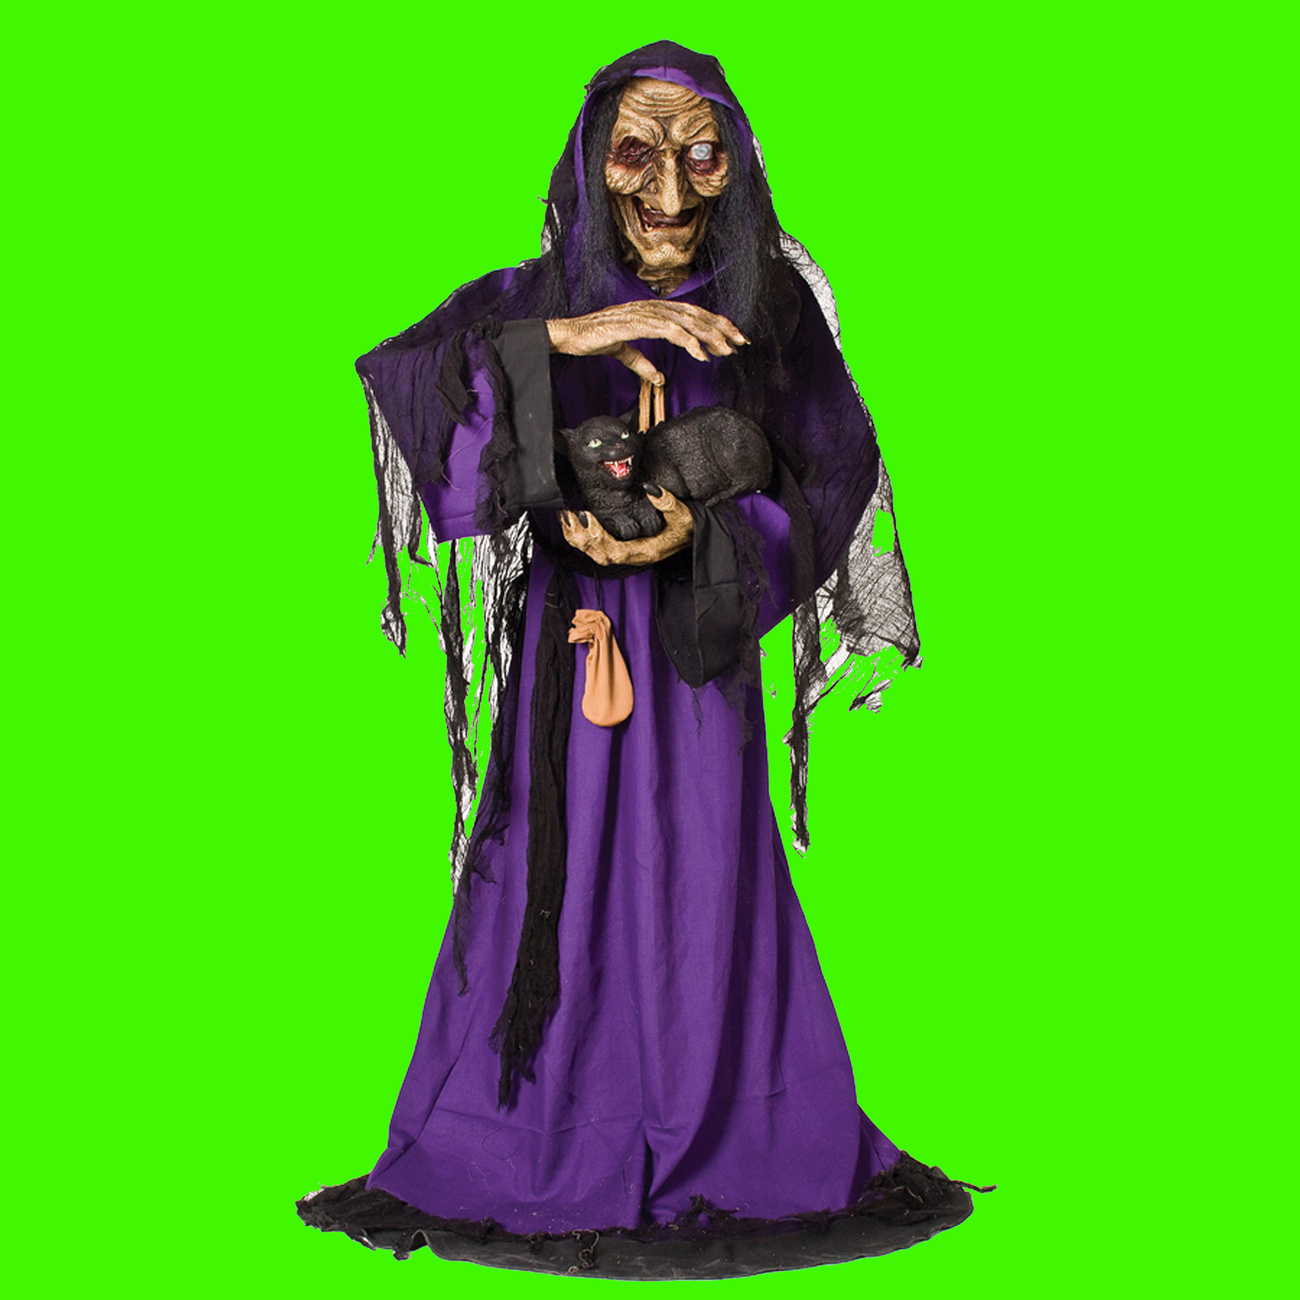 Life Size Animated Light Sound WITCH with BLACK CAT Haunted House Halloween Prop